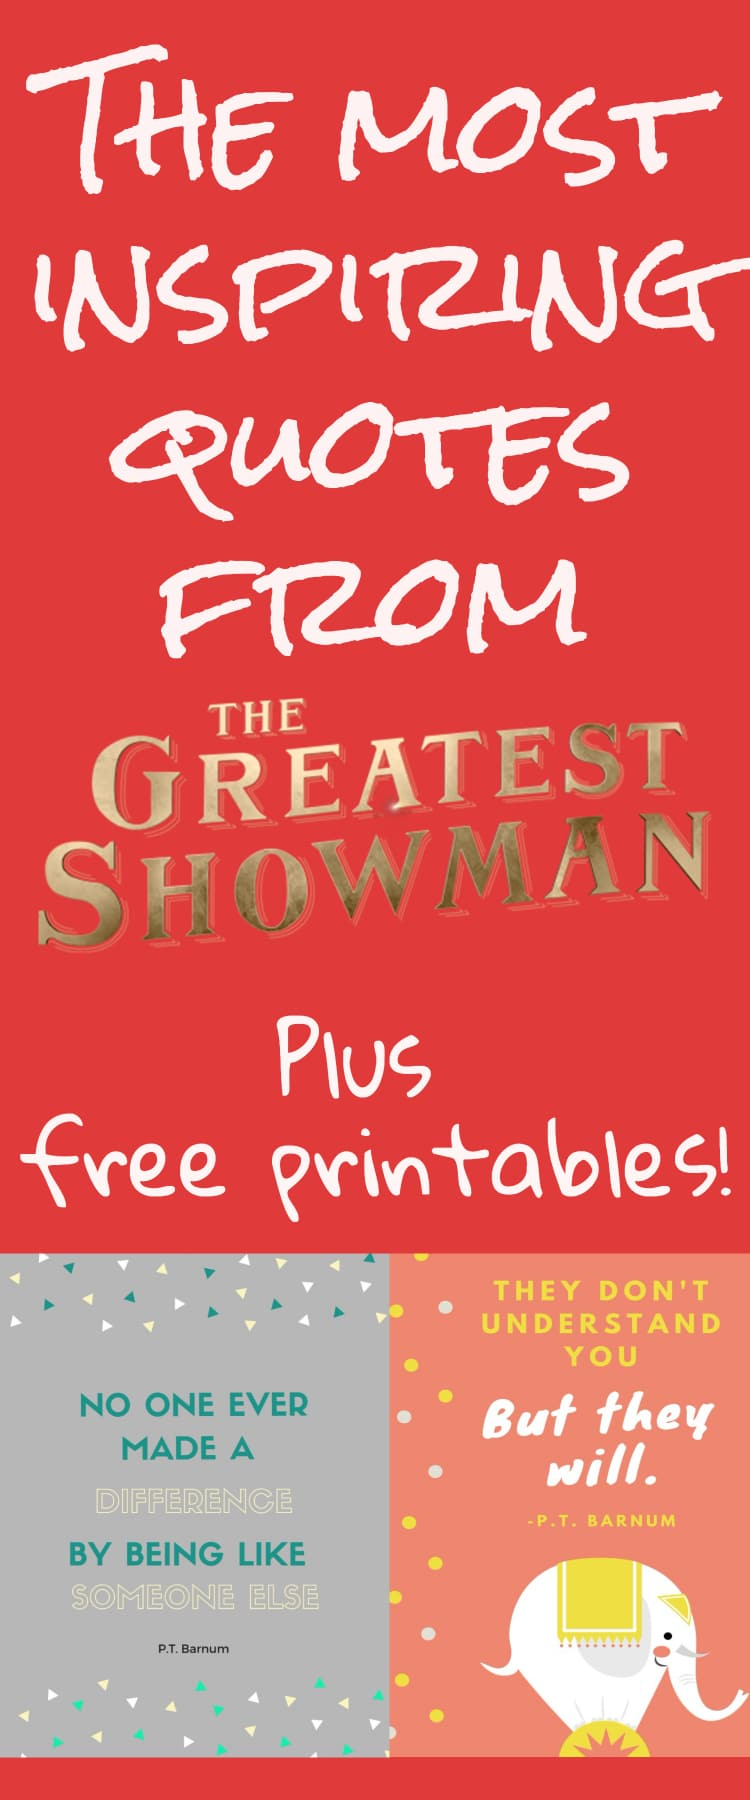 The greatest showman greatest showman quotes inspiration inspiring quotes motivational quotes